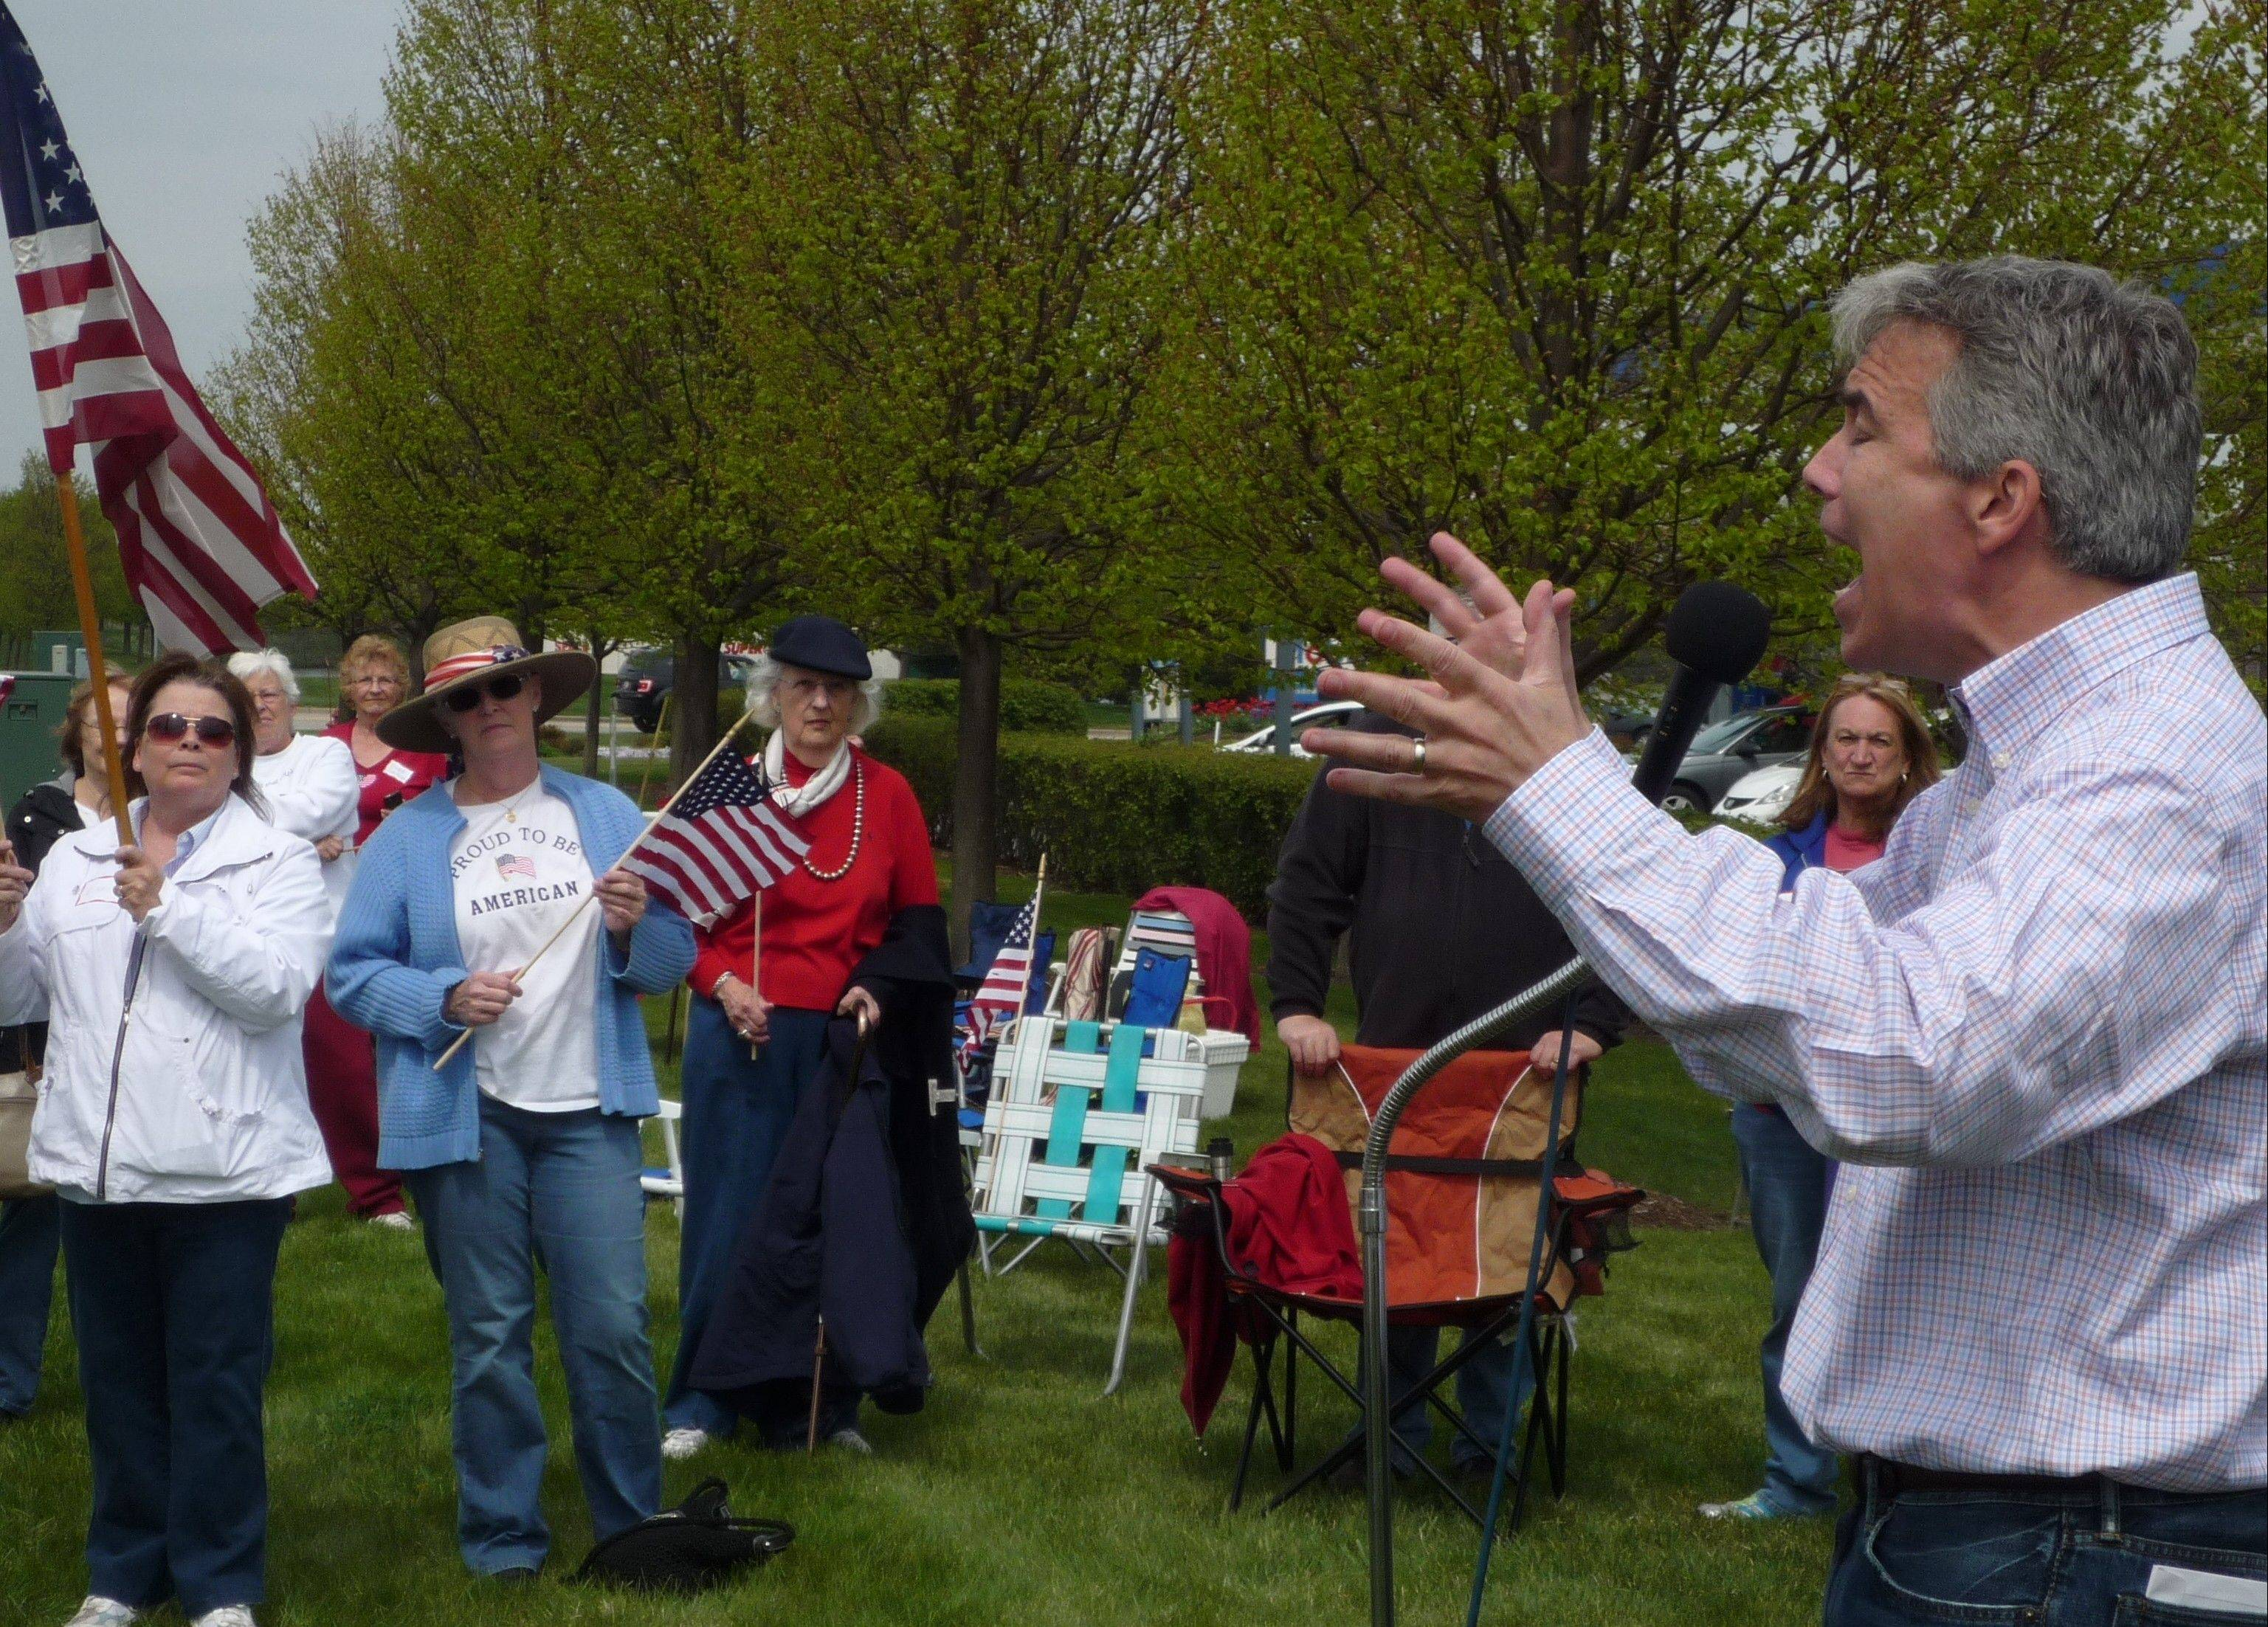 His voice straining at times, Congressman Joe Walsh shouts out his campaign message to a group of loyal Tea Party supporters during a rally Saturday in Huntley.